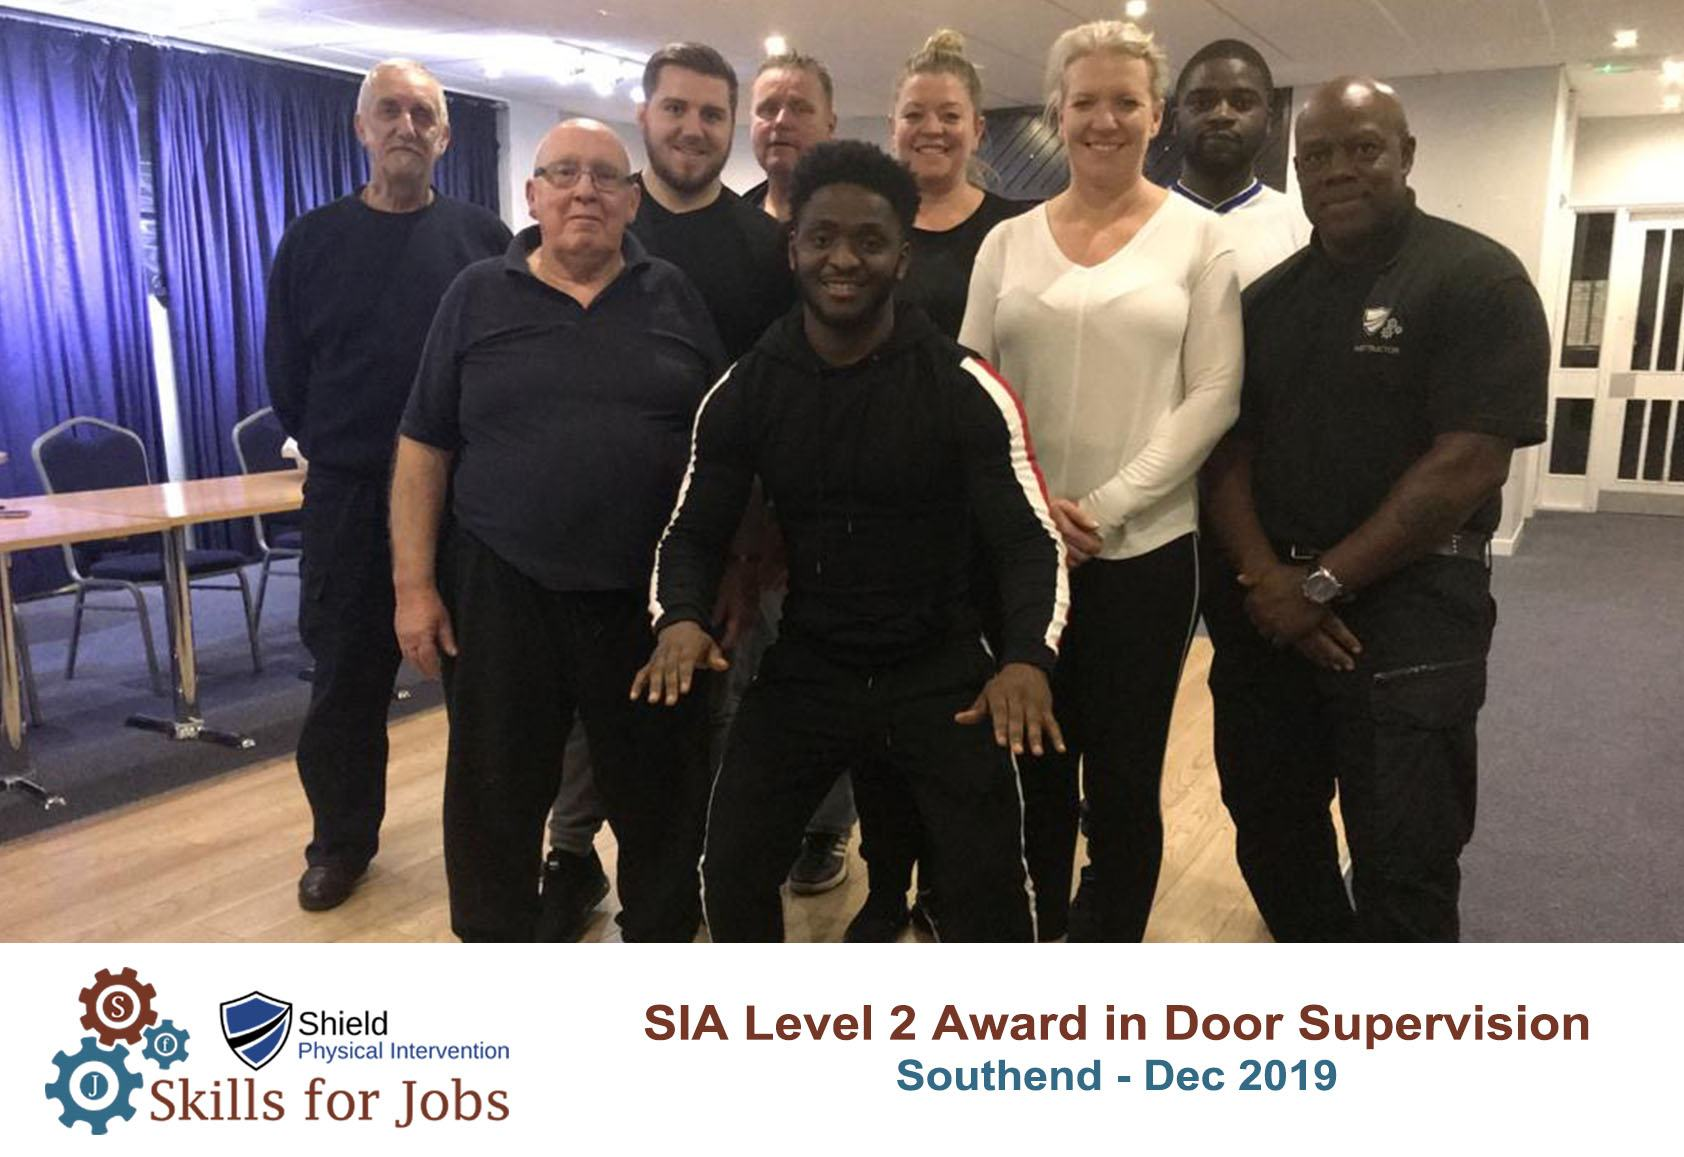 Level 2 Door Supervisor Course in Southend, December 2019